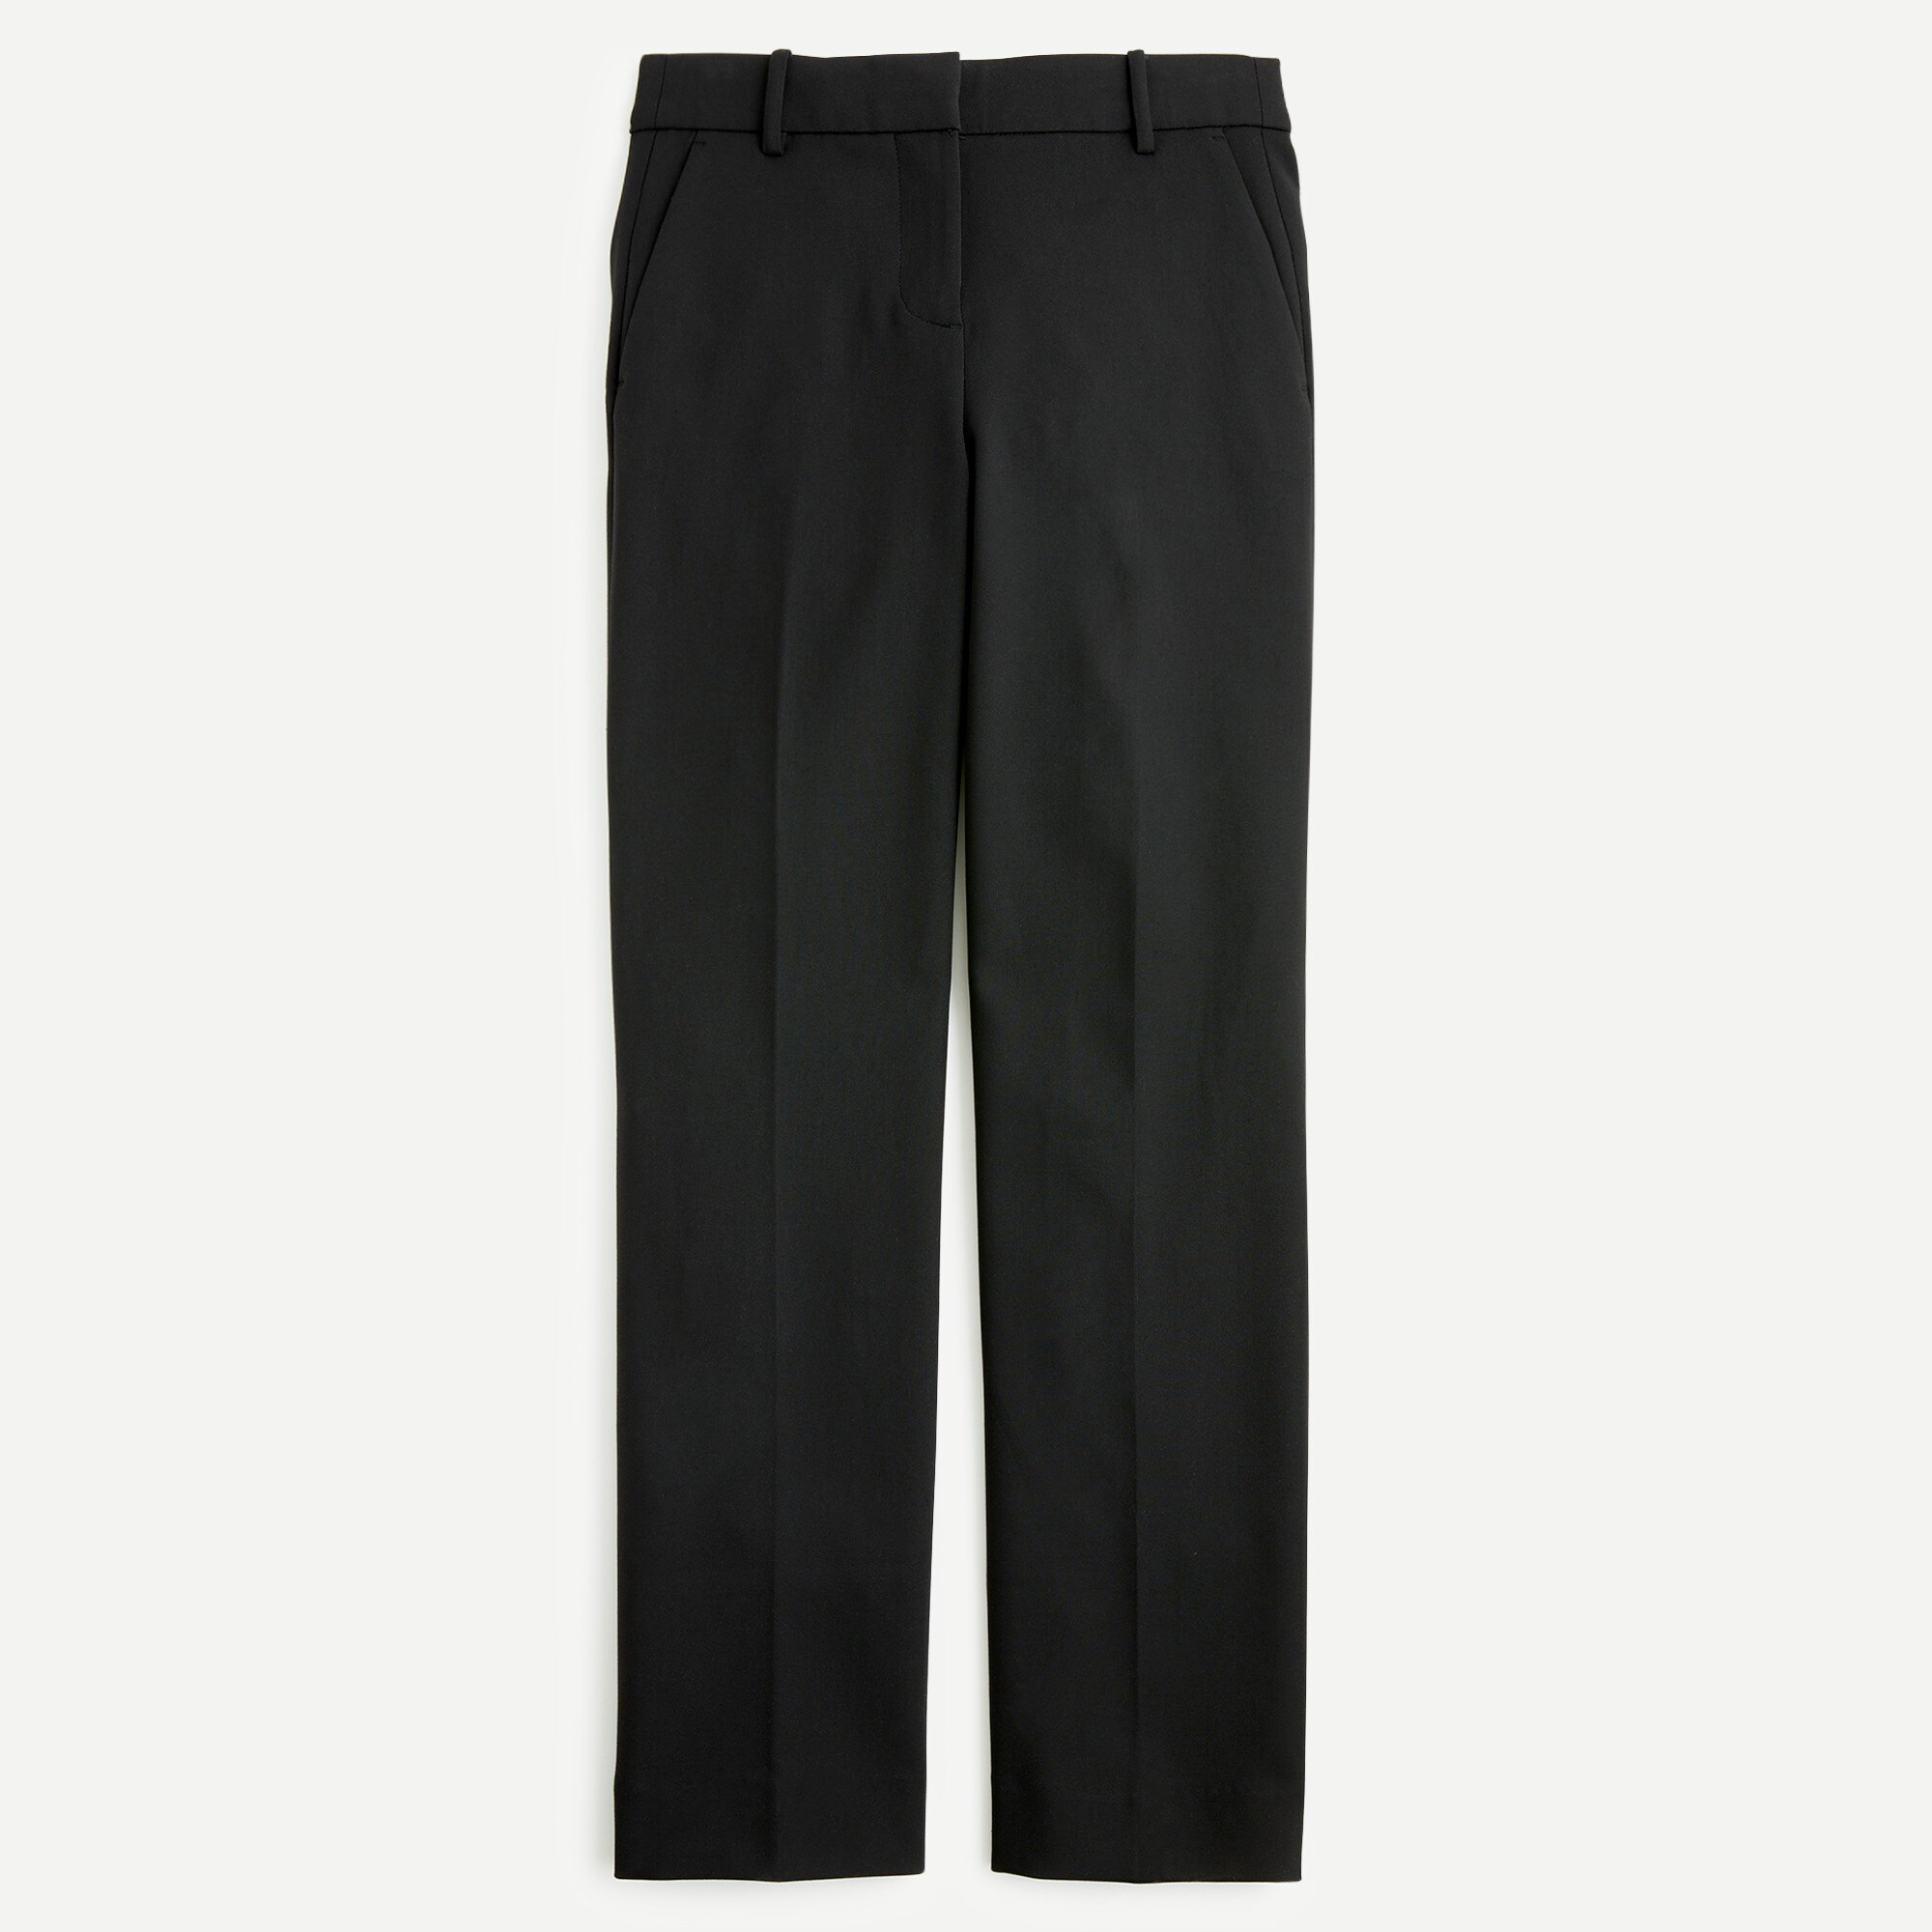 Image 2 for Petite High-rise Peyton wide-leg pant in four-season stretch